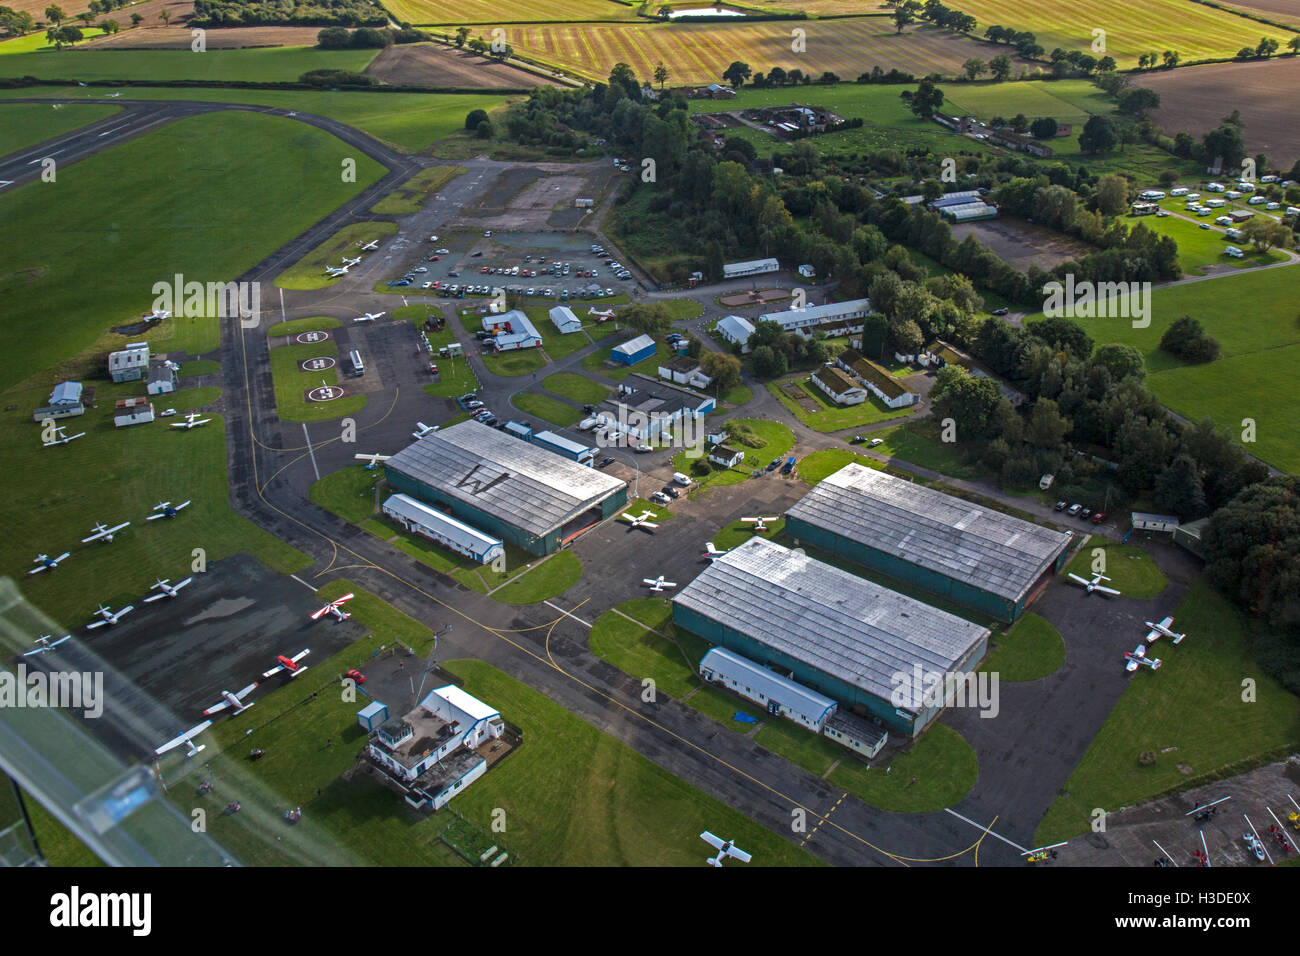 Wolverhampton Halfpenny Green in South Staffordshire, England. Aerial view showing hangars and light aircraft. - Stock Image